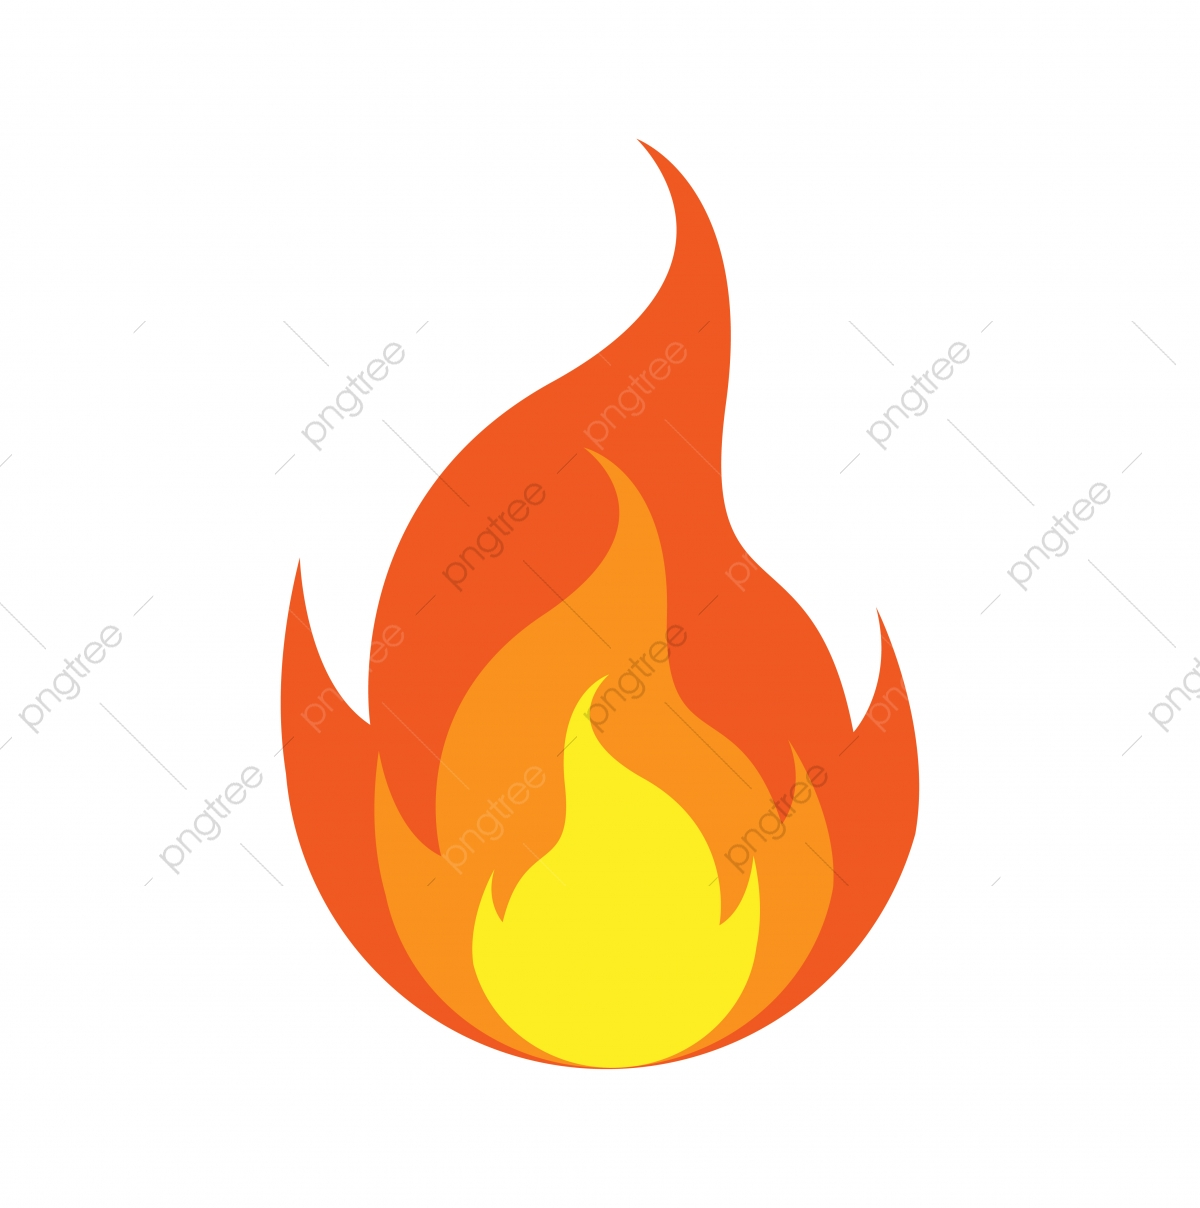 Fire Logo Icon Design Template Vector, Symbol, Fire, Icon PNG and.